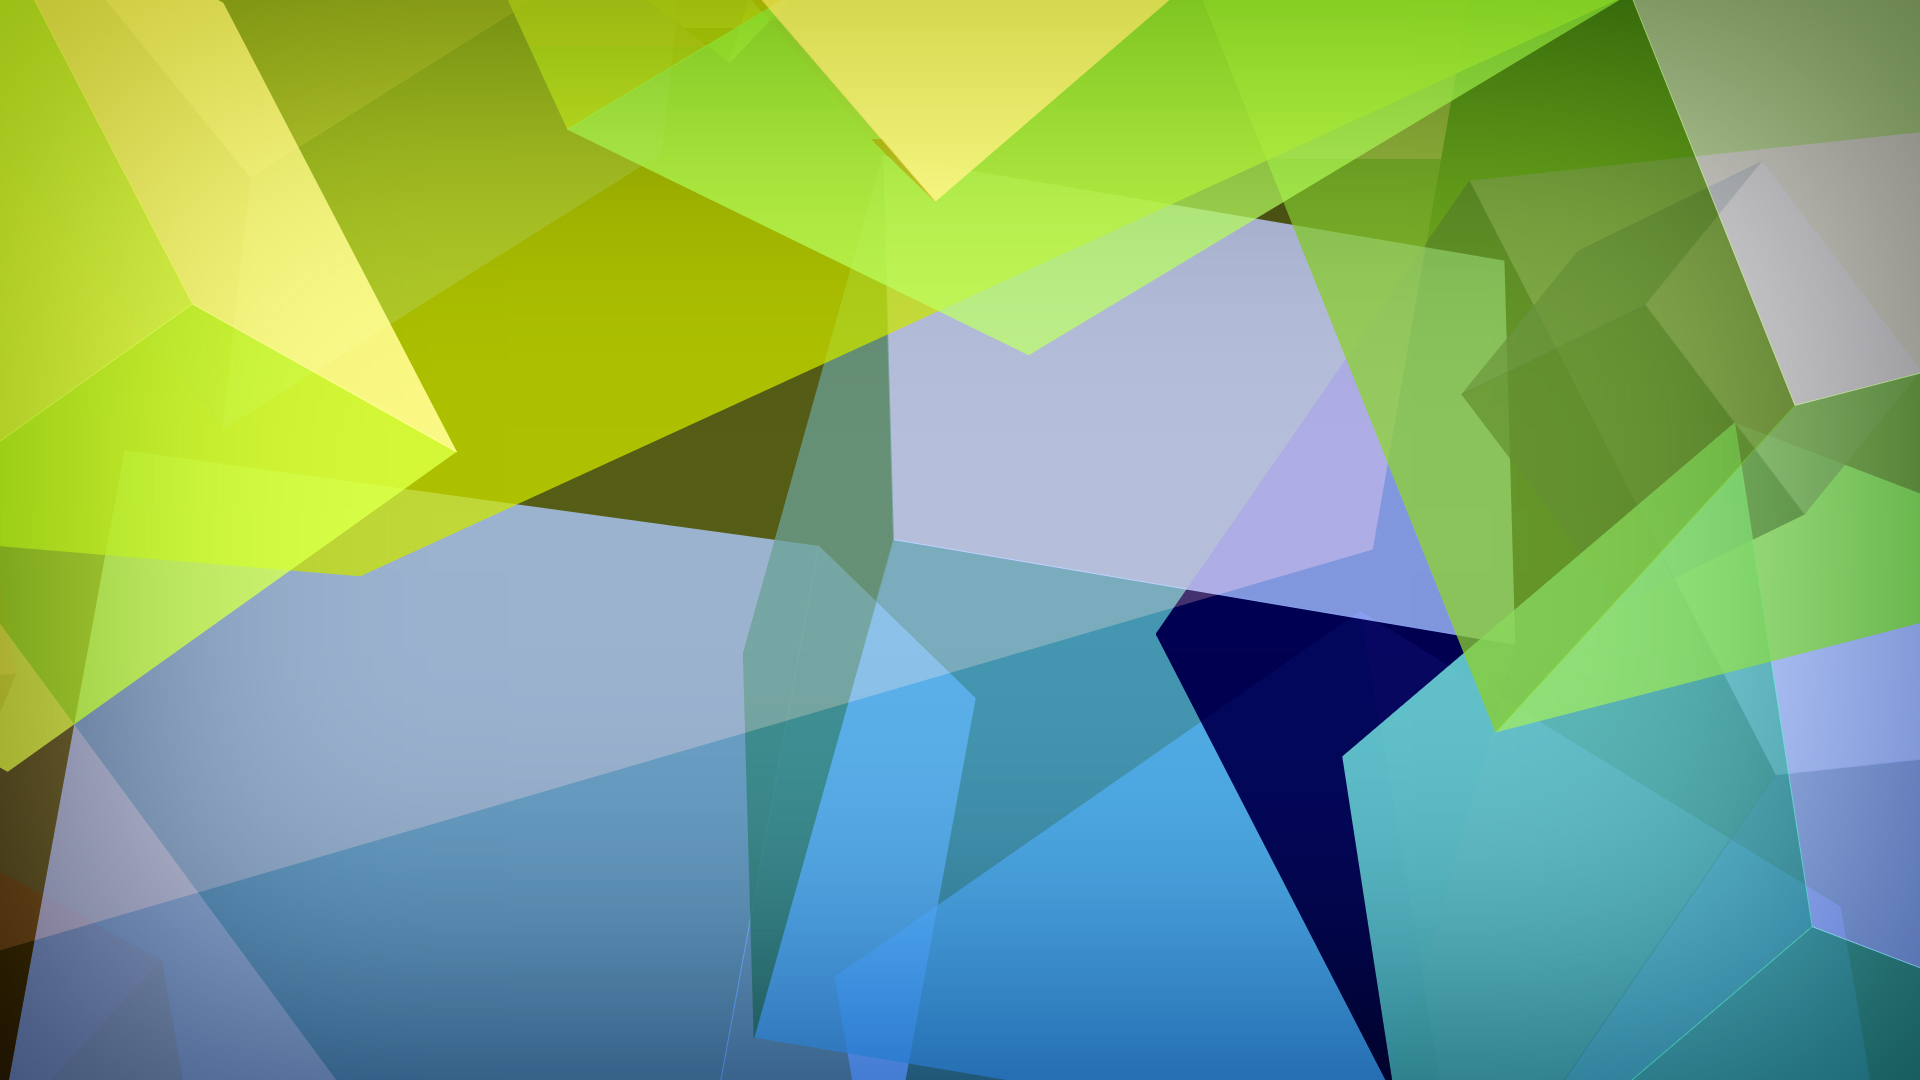 Abstract Geometric Colored Shapes desktop PC and Mac wallpaper 1920x1080